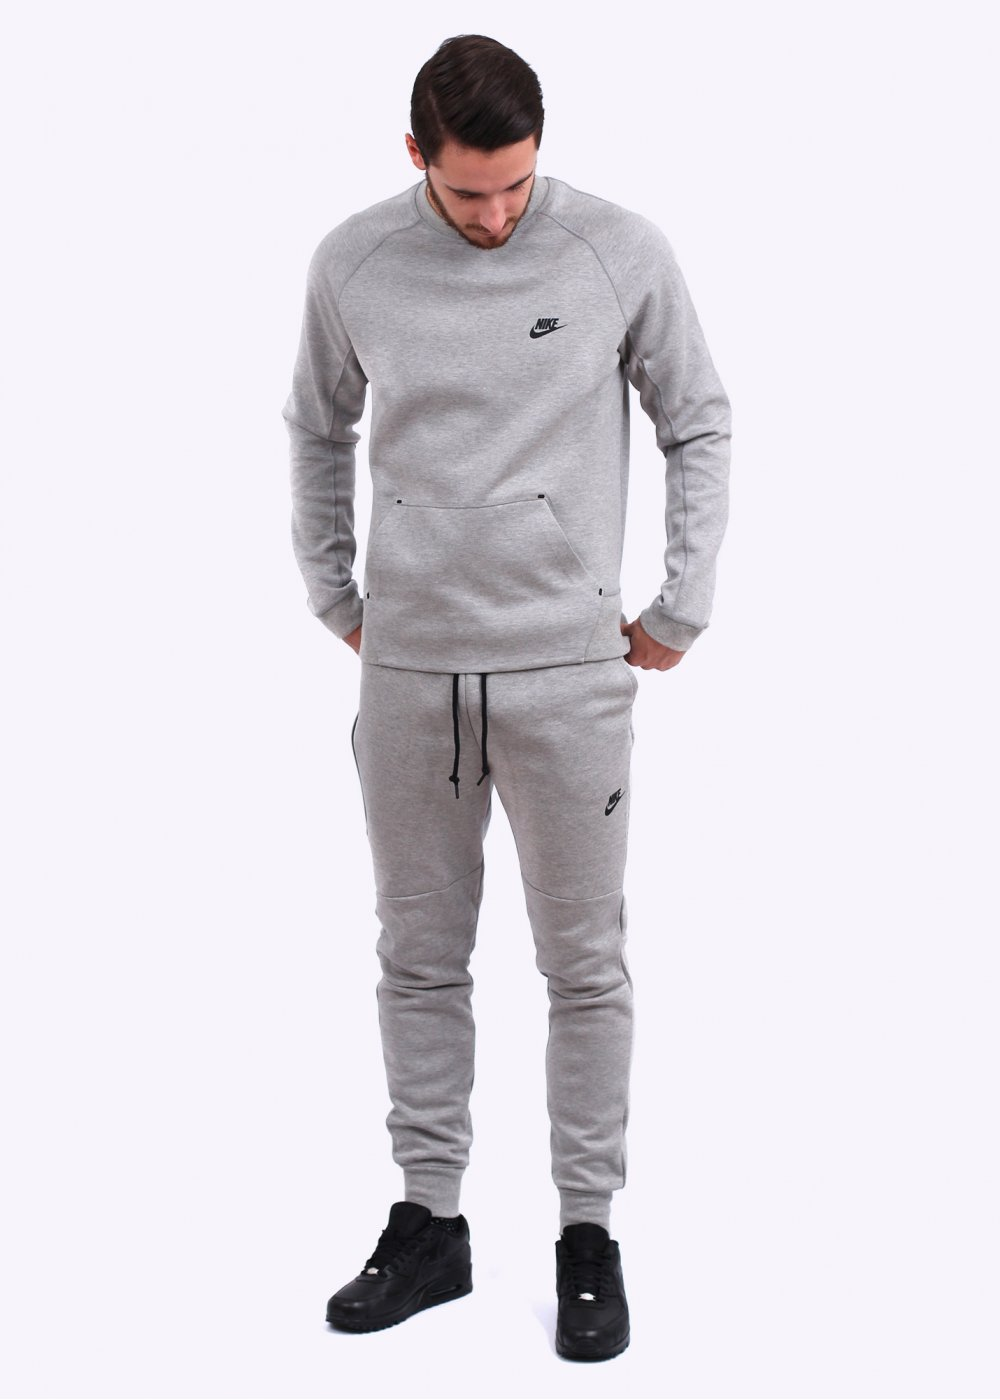 nike sportswear tech fleece pant grey. Black Bedroom Furniture Sets. Home Design Ideas